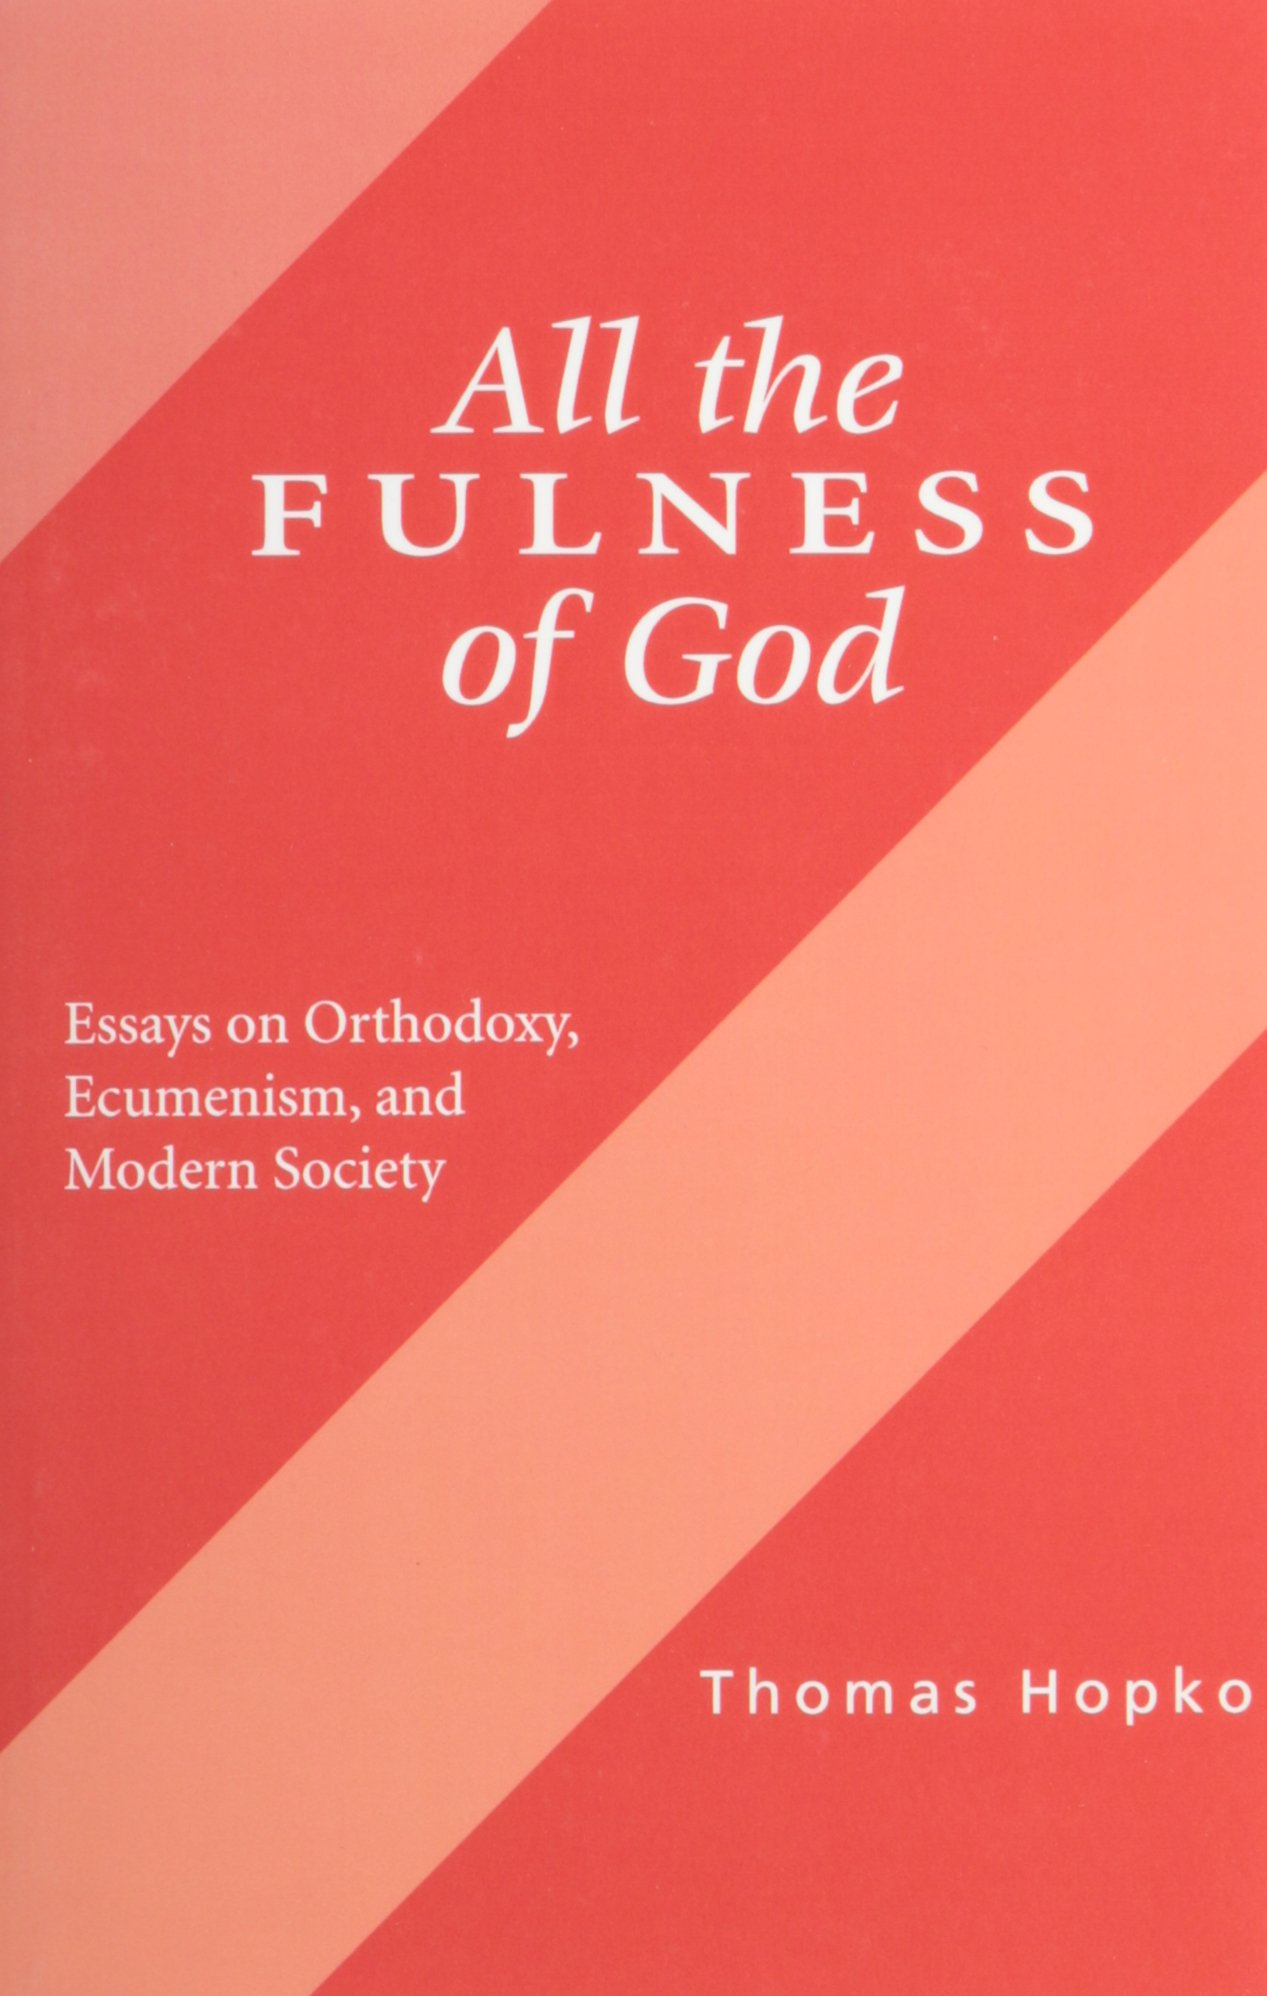 all the fullness of god book cover